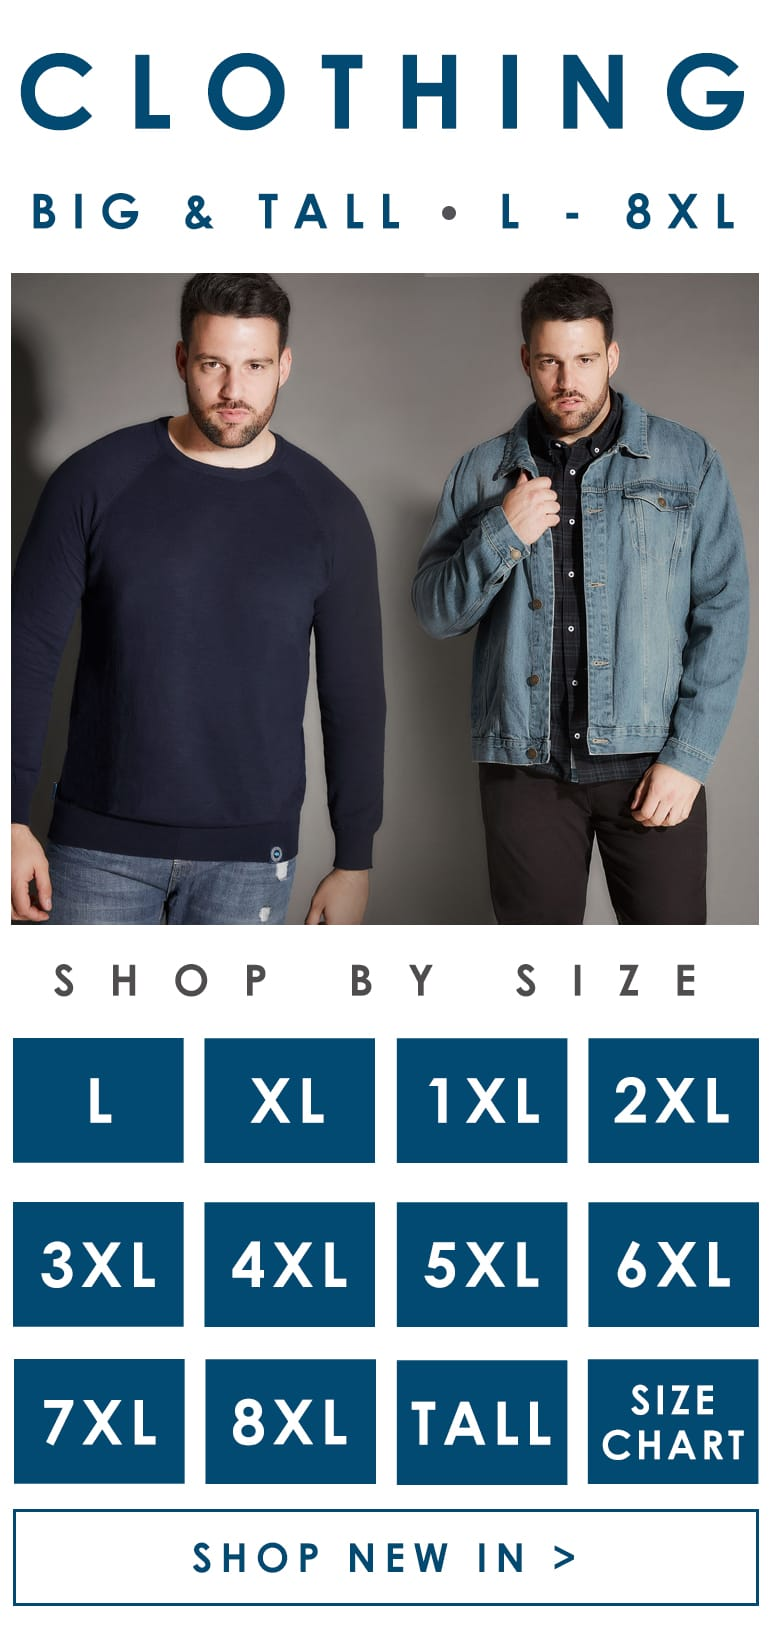 Menswear big and tall sizes L-8XL >